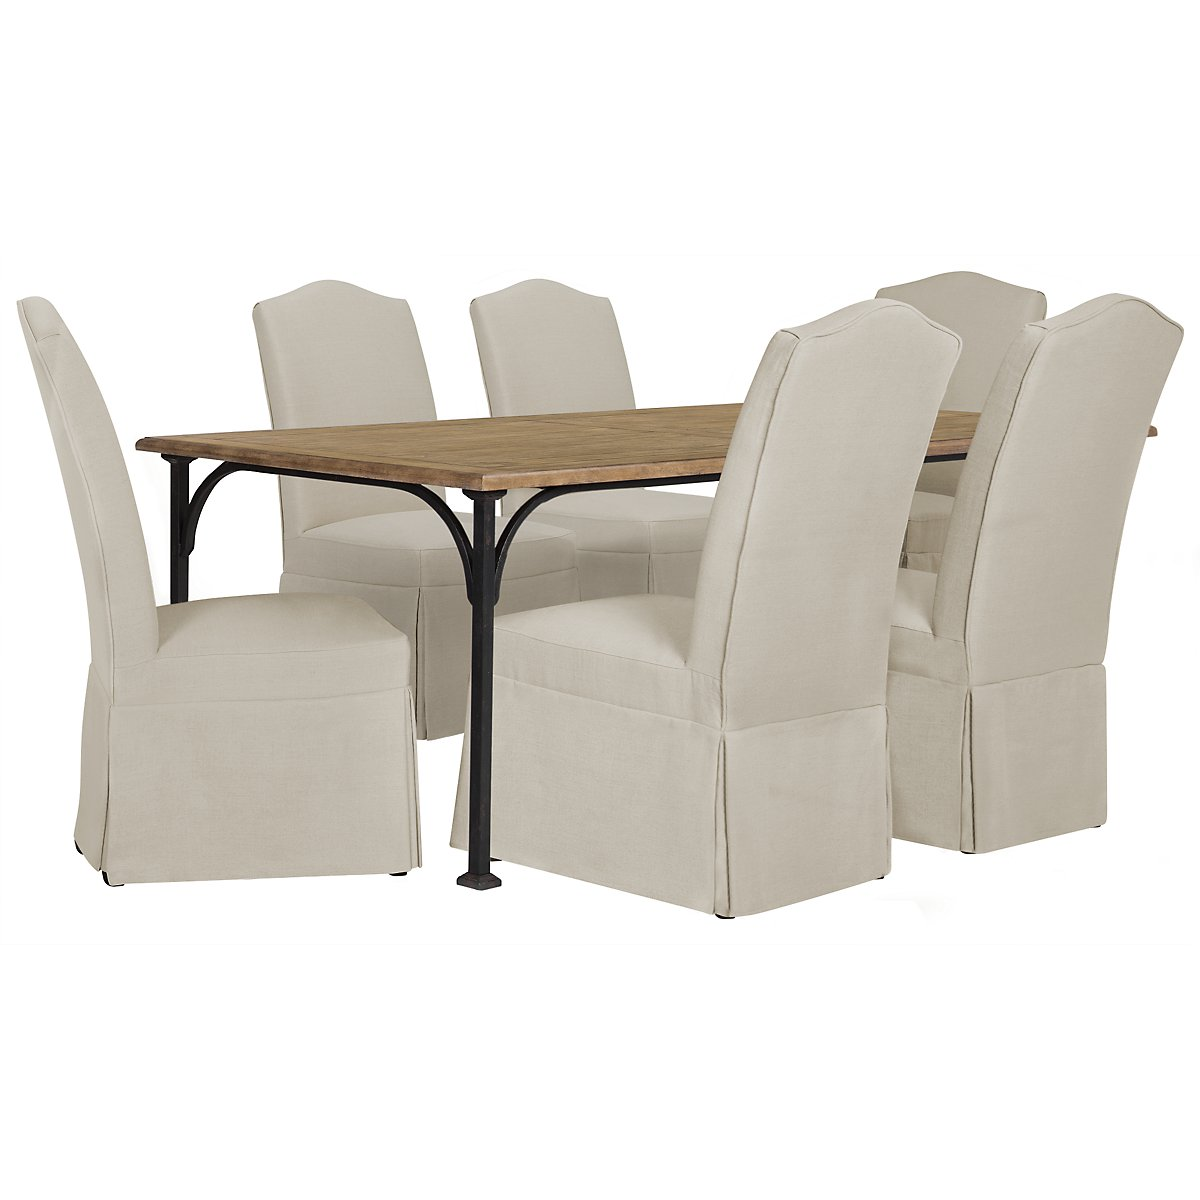 Shelbourne2 Mid Tone Rectangular Table & 4 Upholstered Chairs